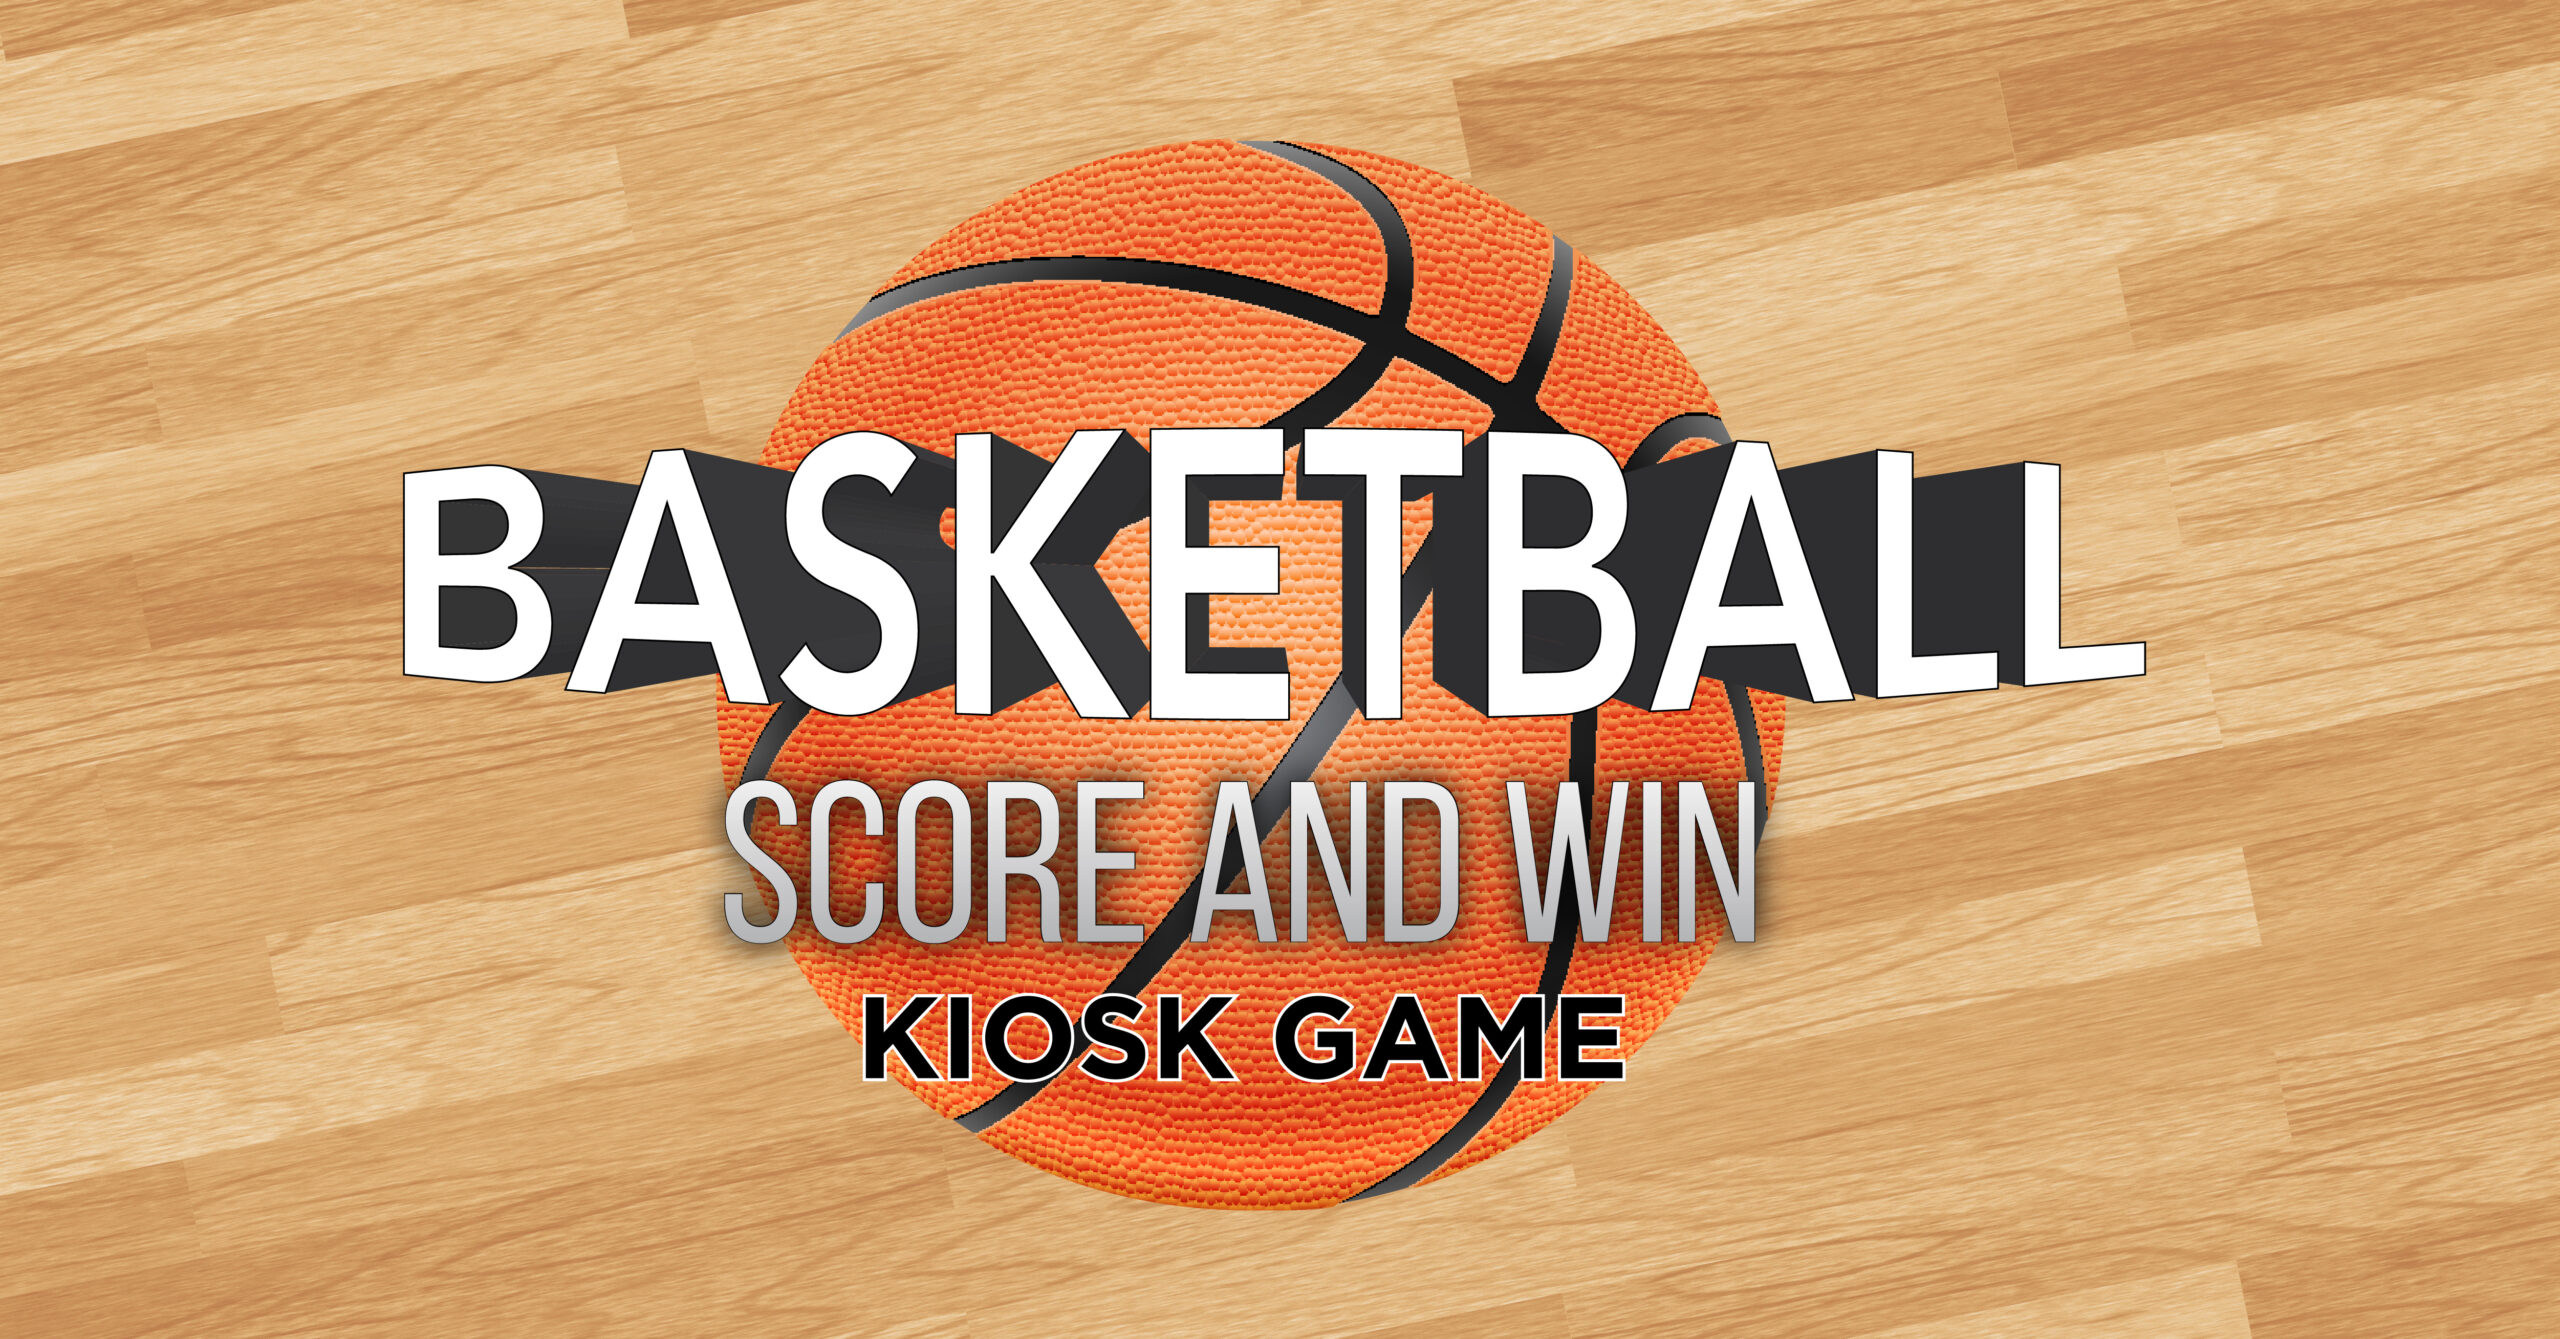 BASKETBALL SCORE AND WIN – KIOSK GAME